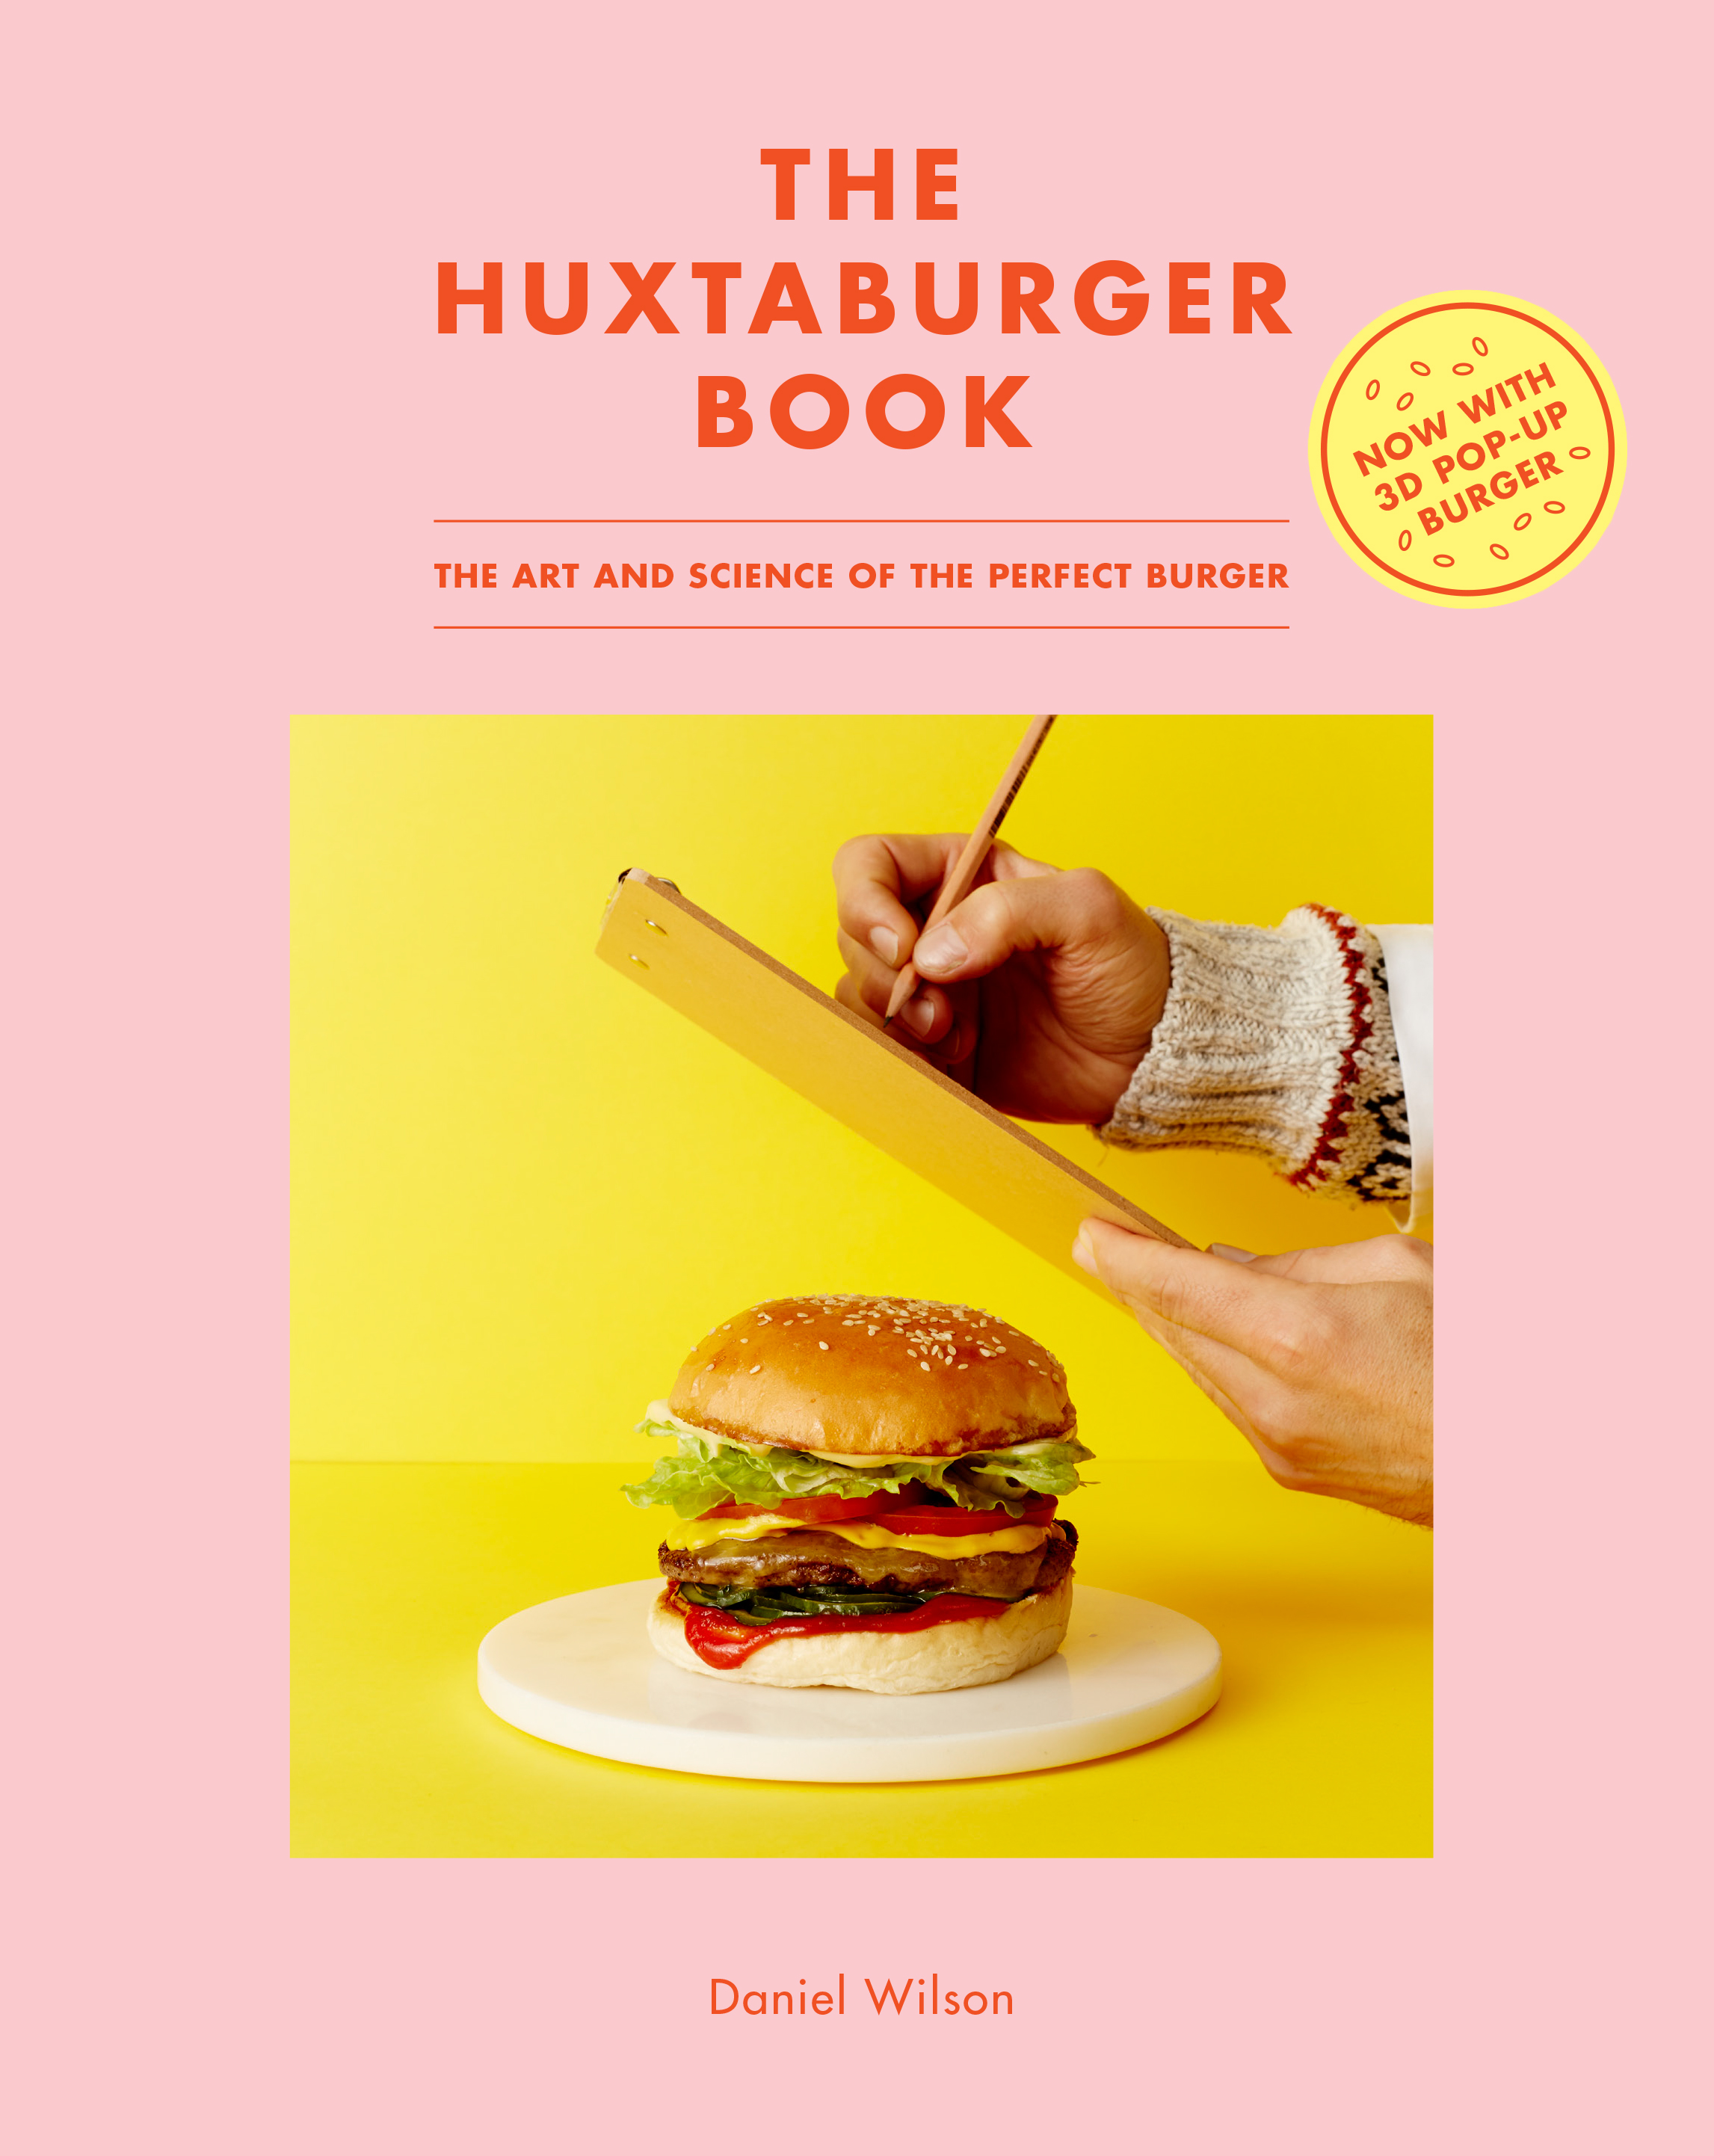 Welcome to Huxtaburger